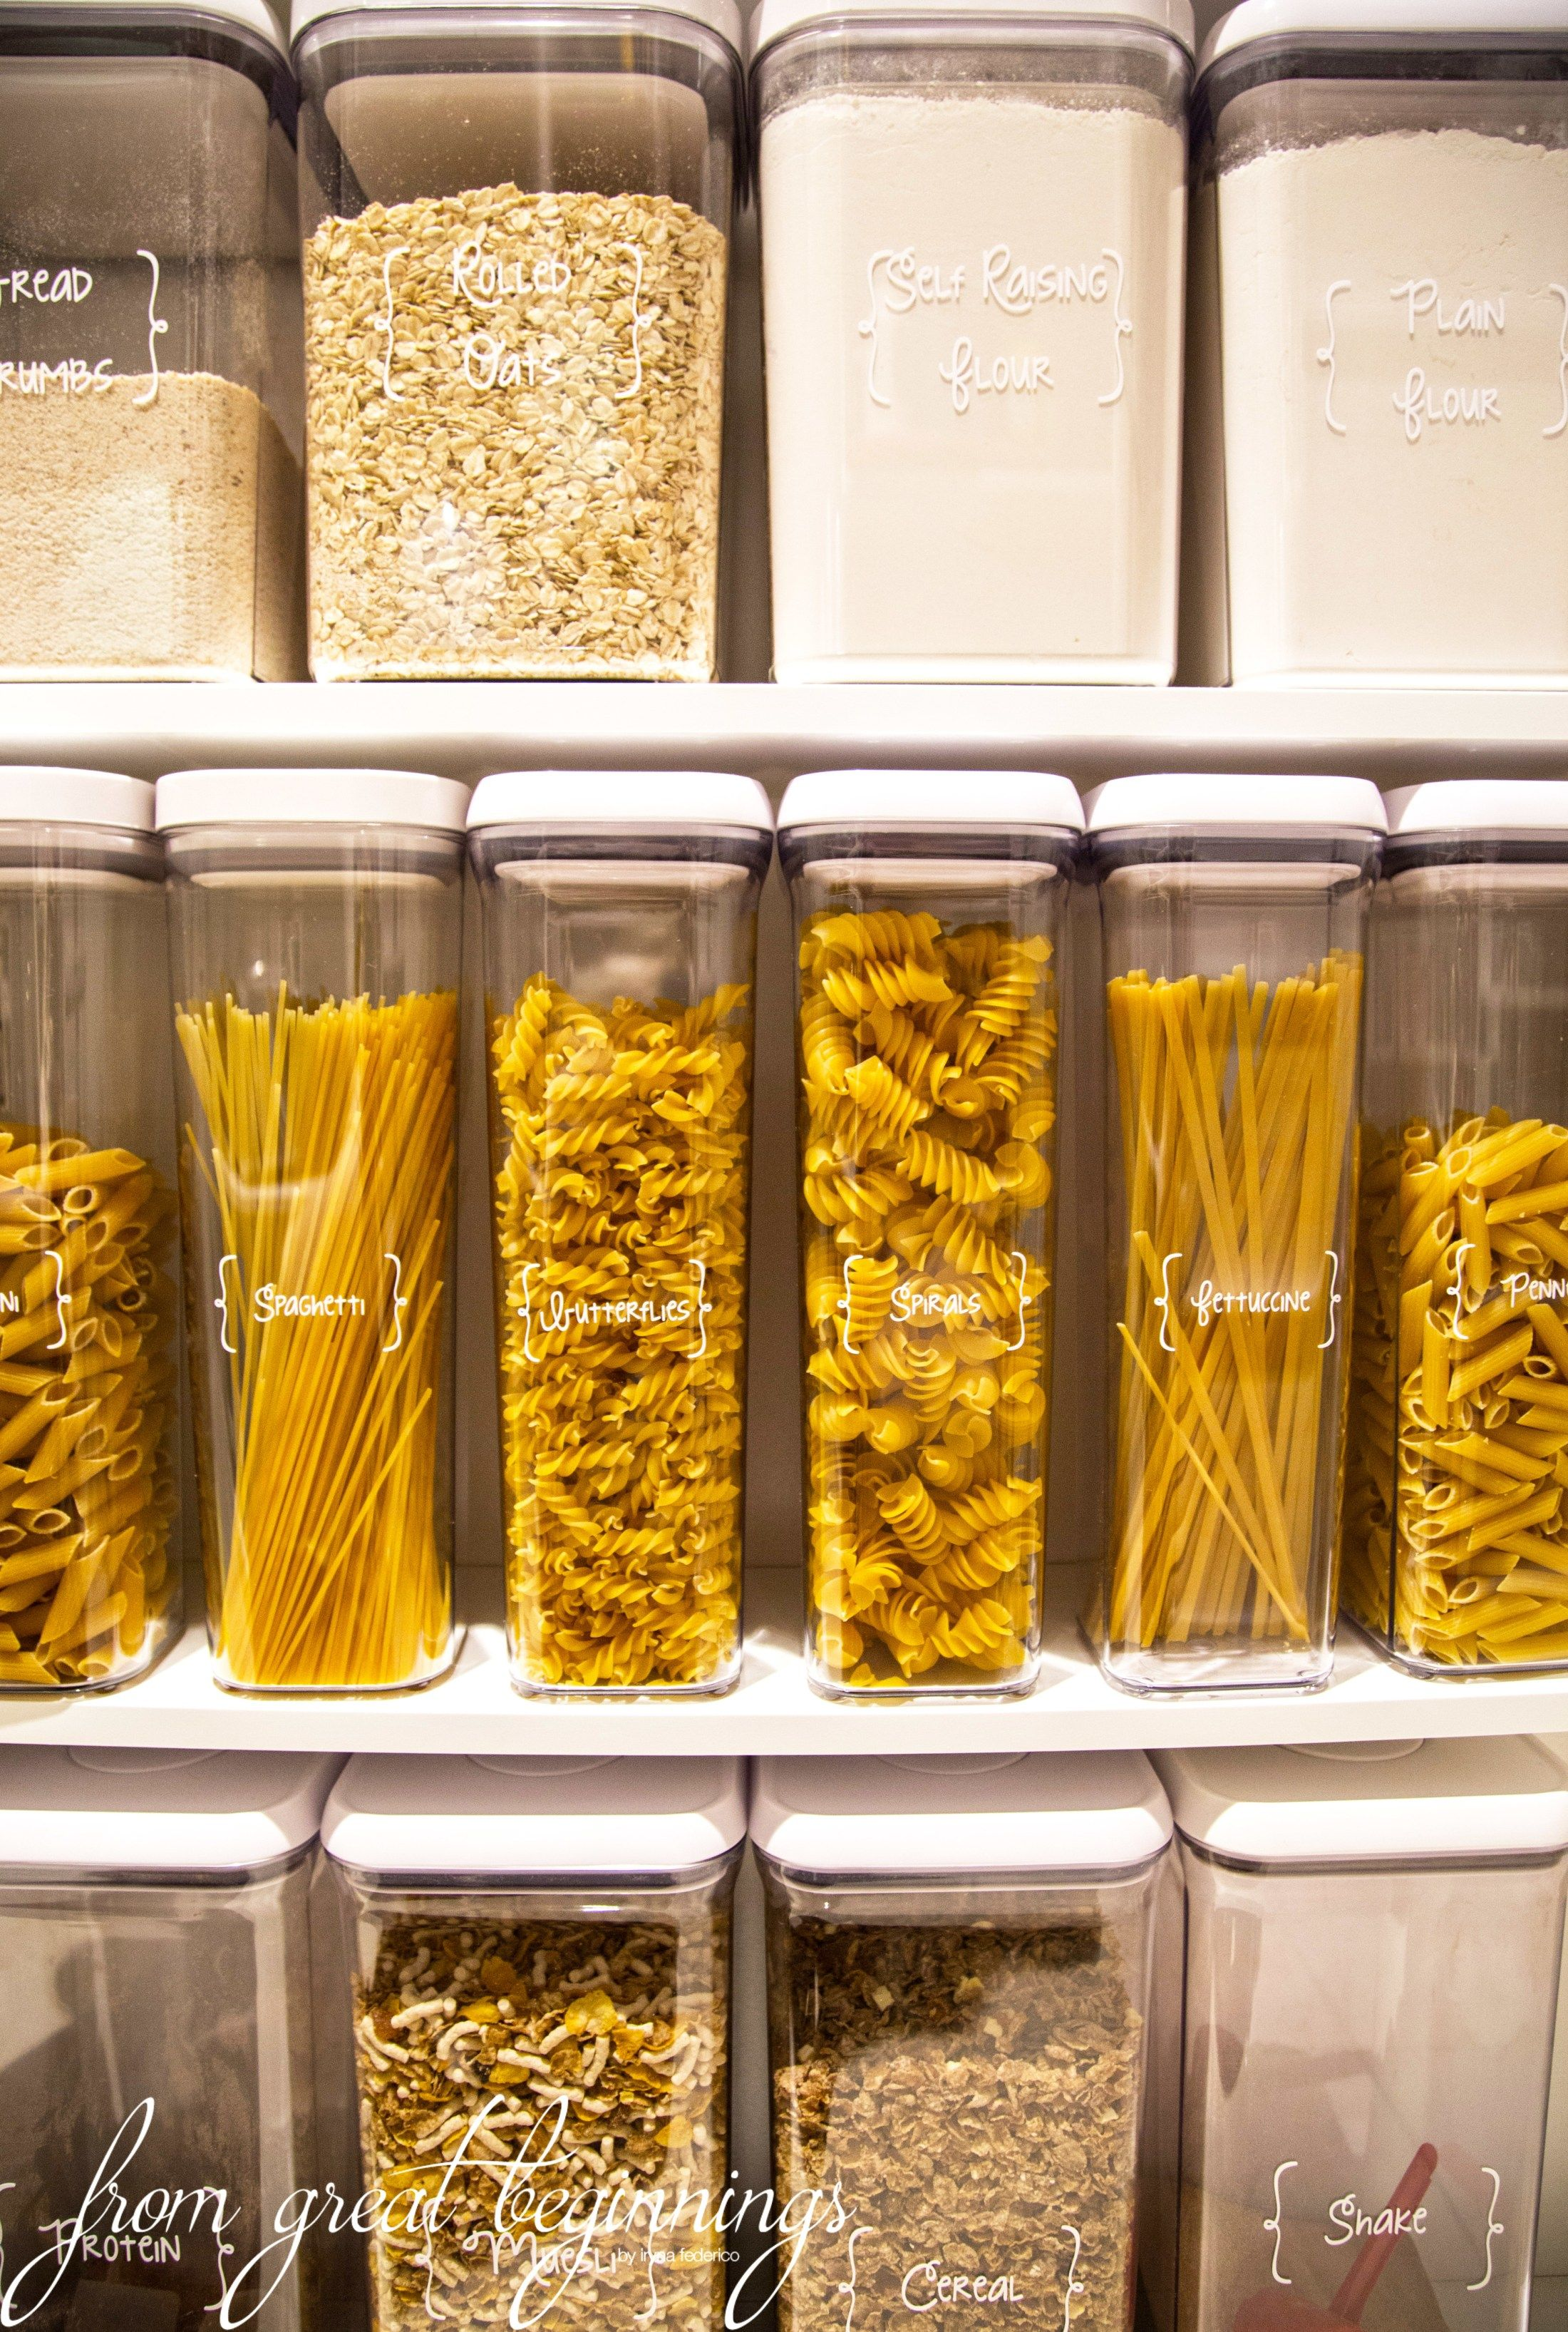 Storing Dry Goods In Your Pantry Kitchen Organization